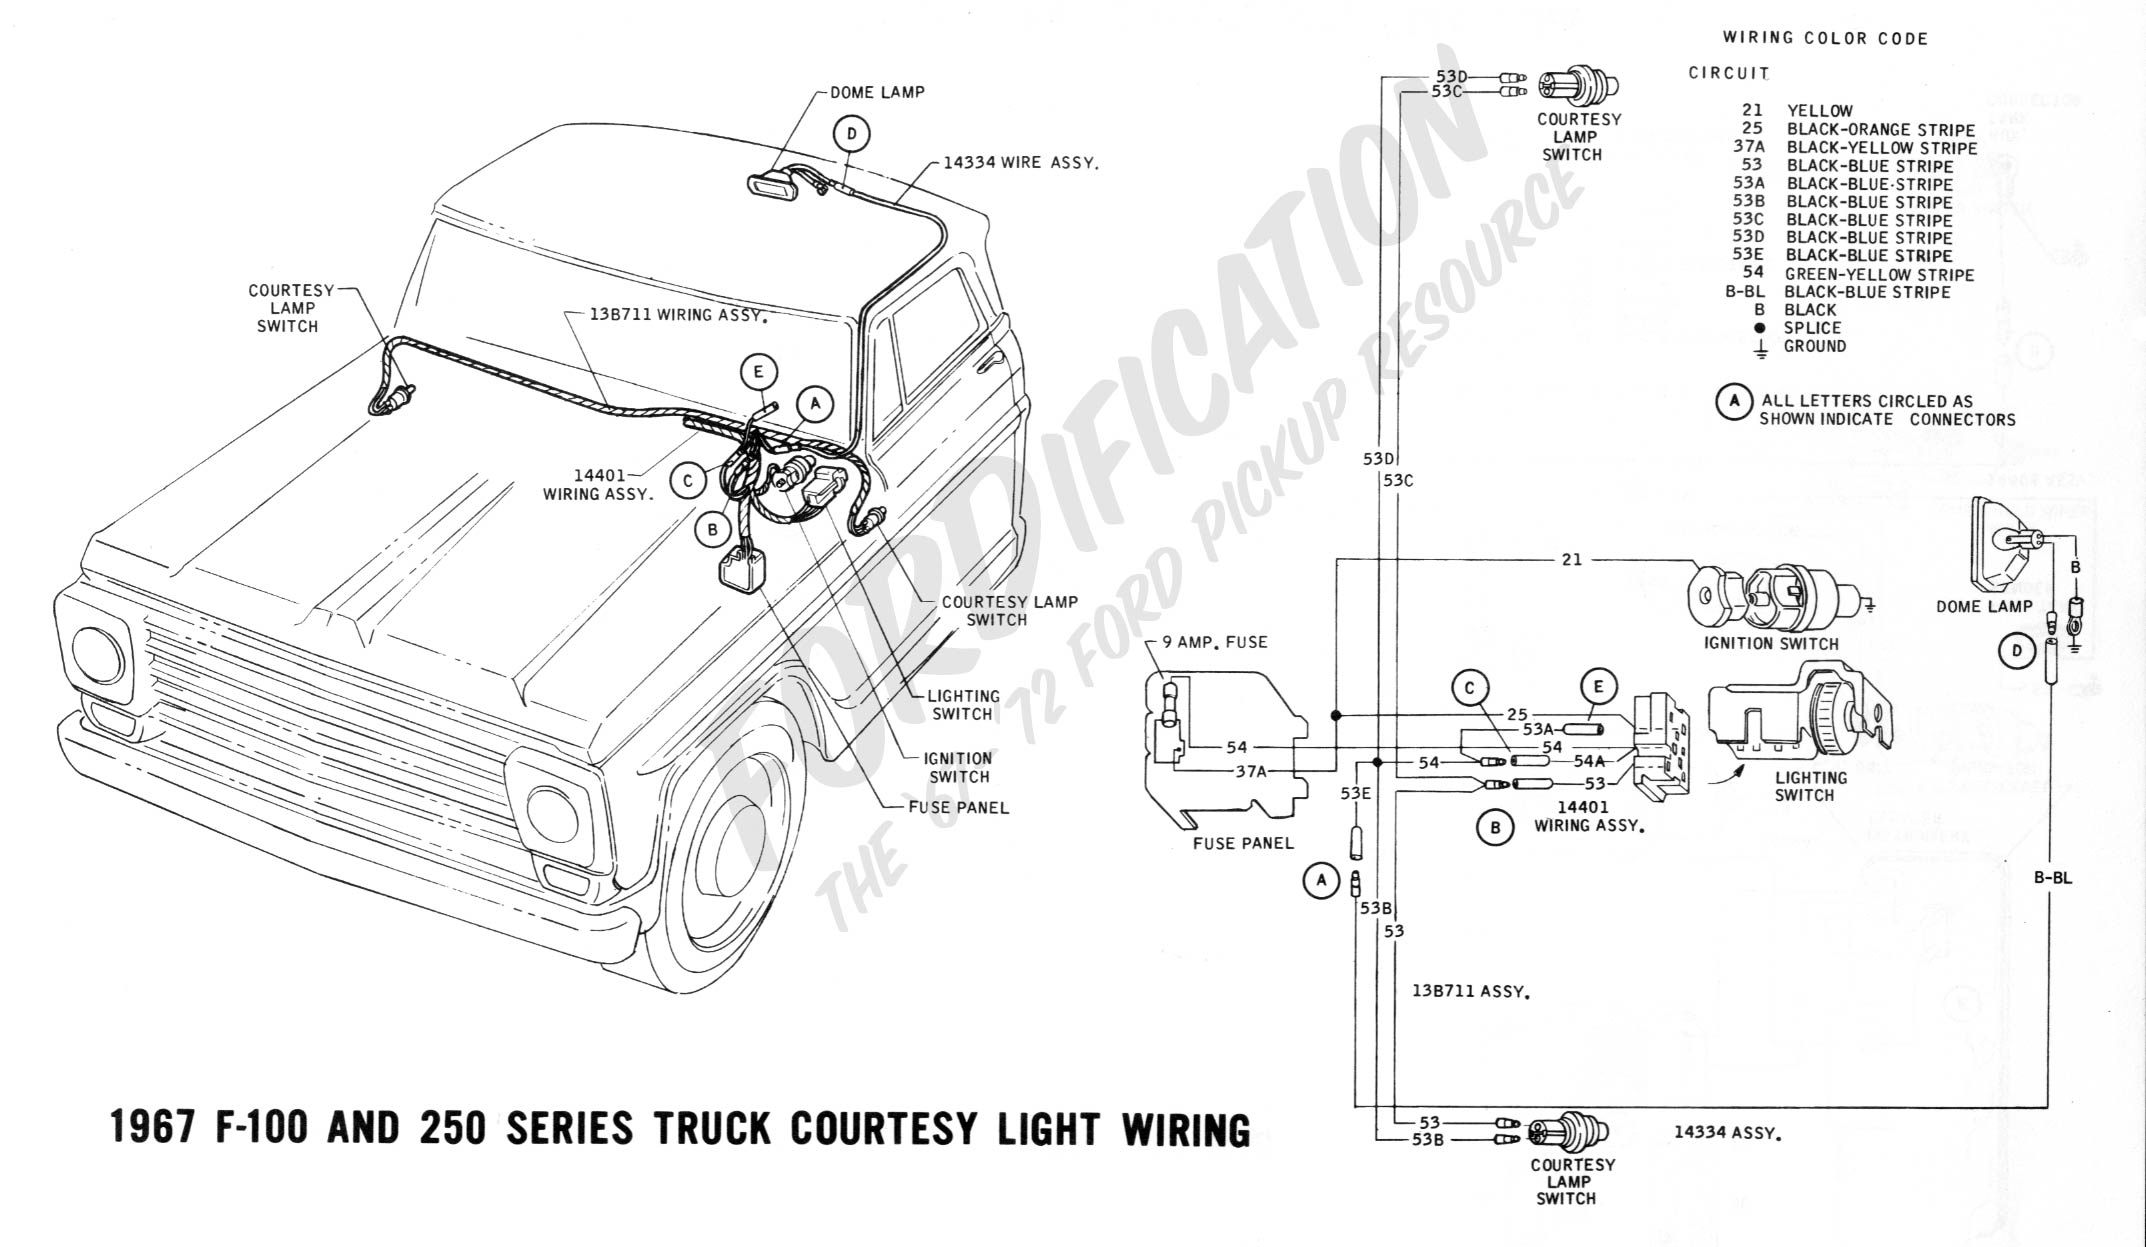 wiring 1967courtesylight wiring in ignition switch in 1966 f100 ford truck enthusiasts forums wire ignition switch diagram lawn mowers at couponss.co